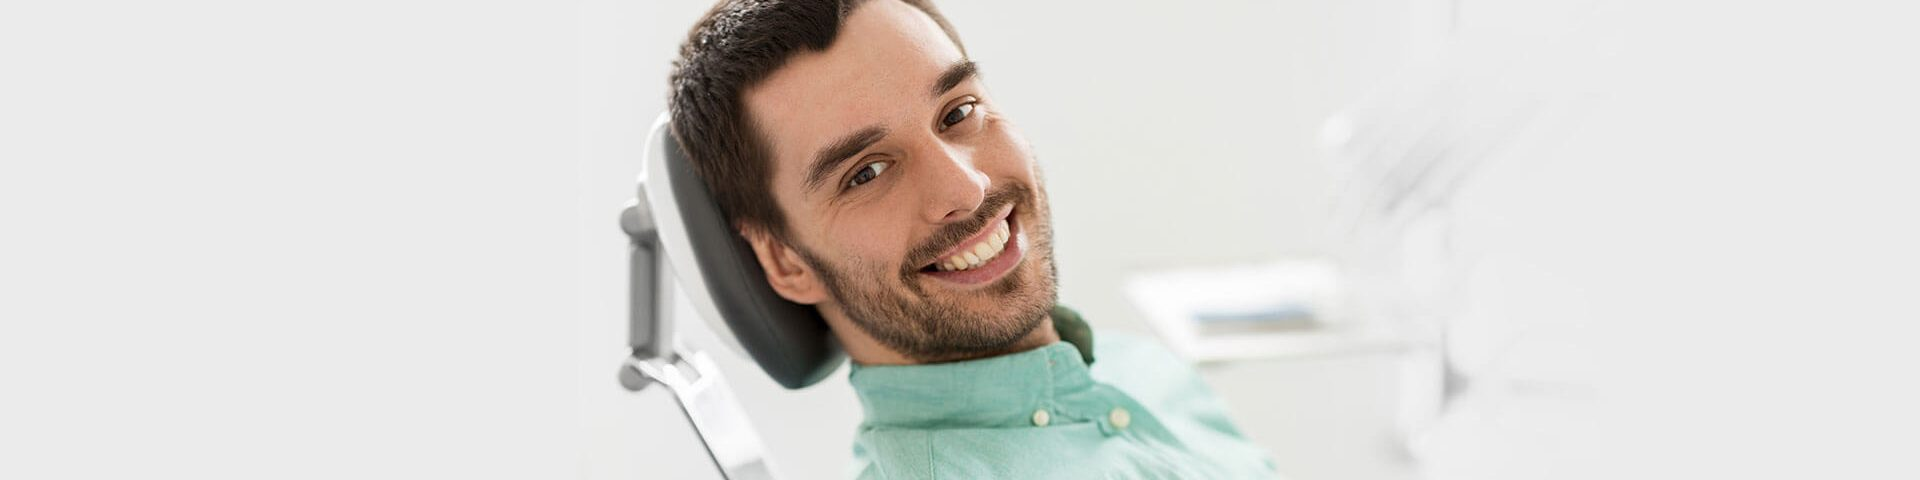 How Long Do You Have to Wait to Get Dentures After Your Teeth are Extracted?